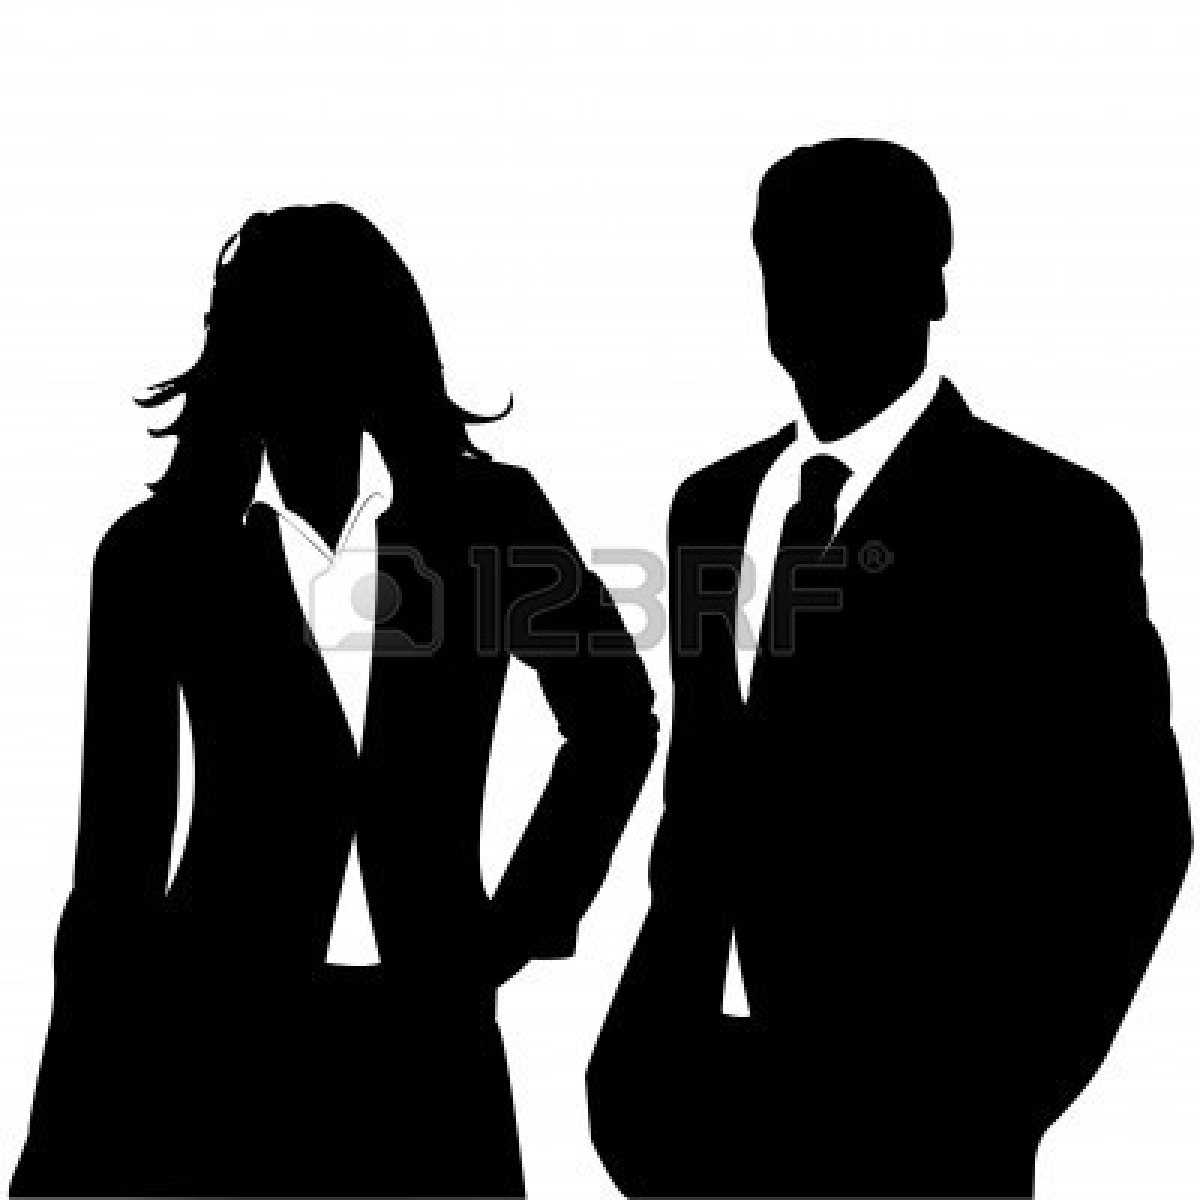 business people silhouette clip art at getdrawings com free for rh getdrawings com free clipart for business cards free clipart for business logo